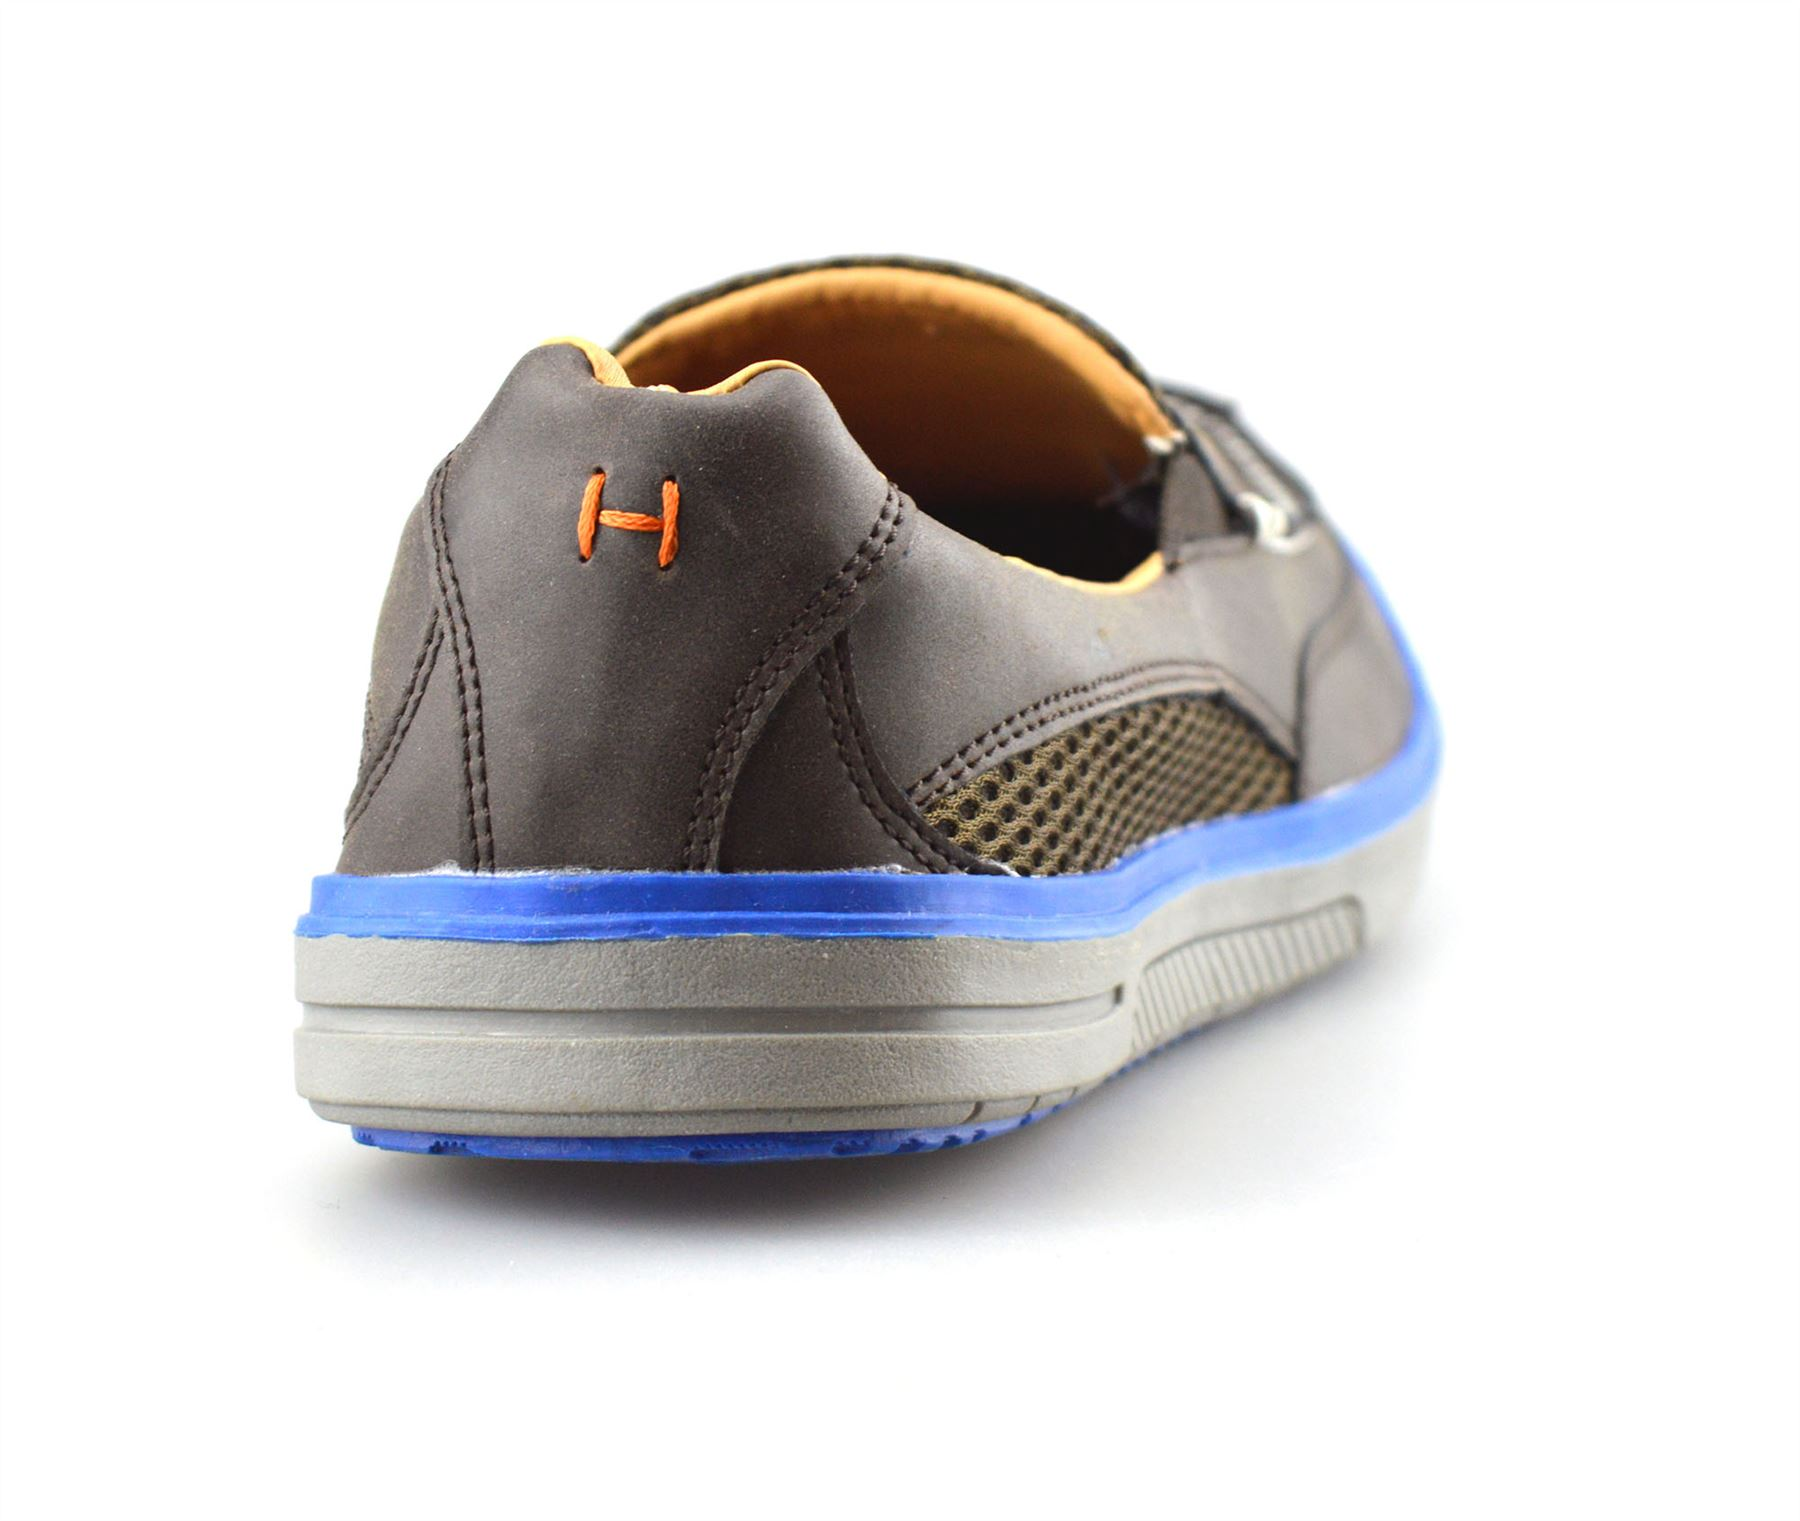 Mens-Casual-Memory-Foam-Slip-On-Walking-Loafers-Moccasin-Driving-Boat-Shoes-Size thumbnail 19